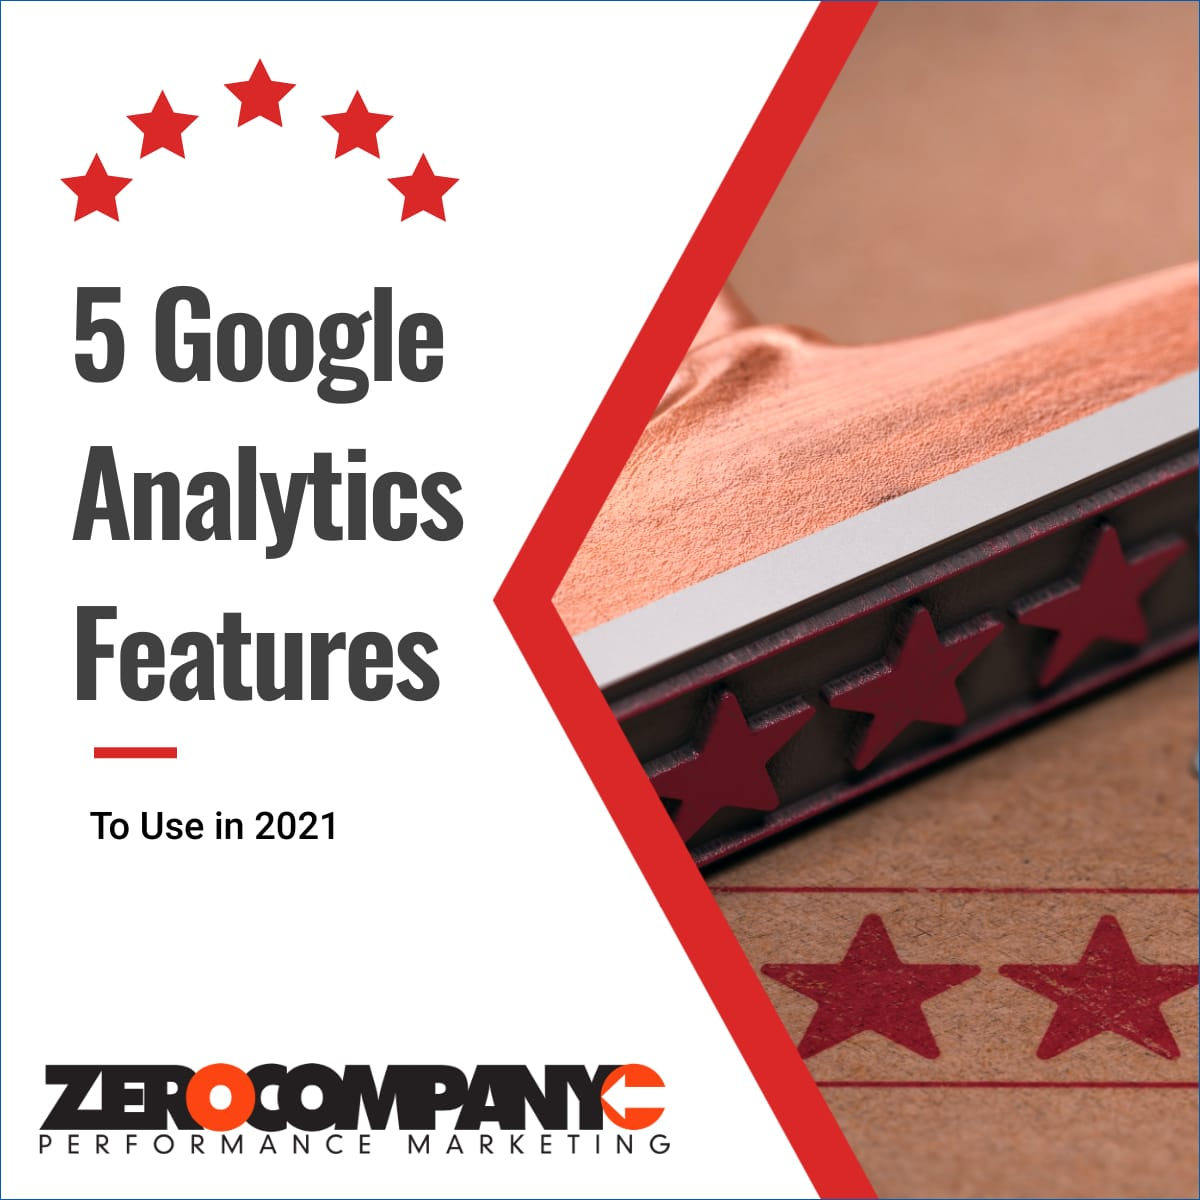 featured image for article on google analytics with red stars.